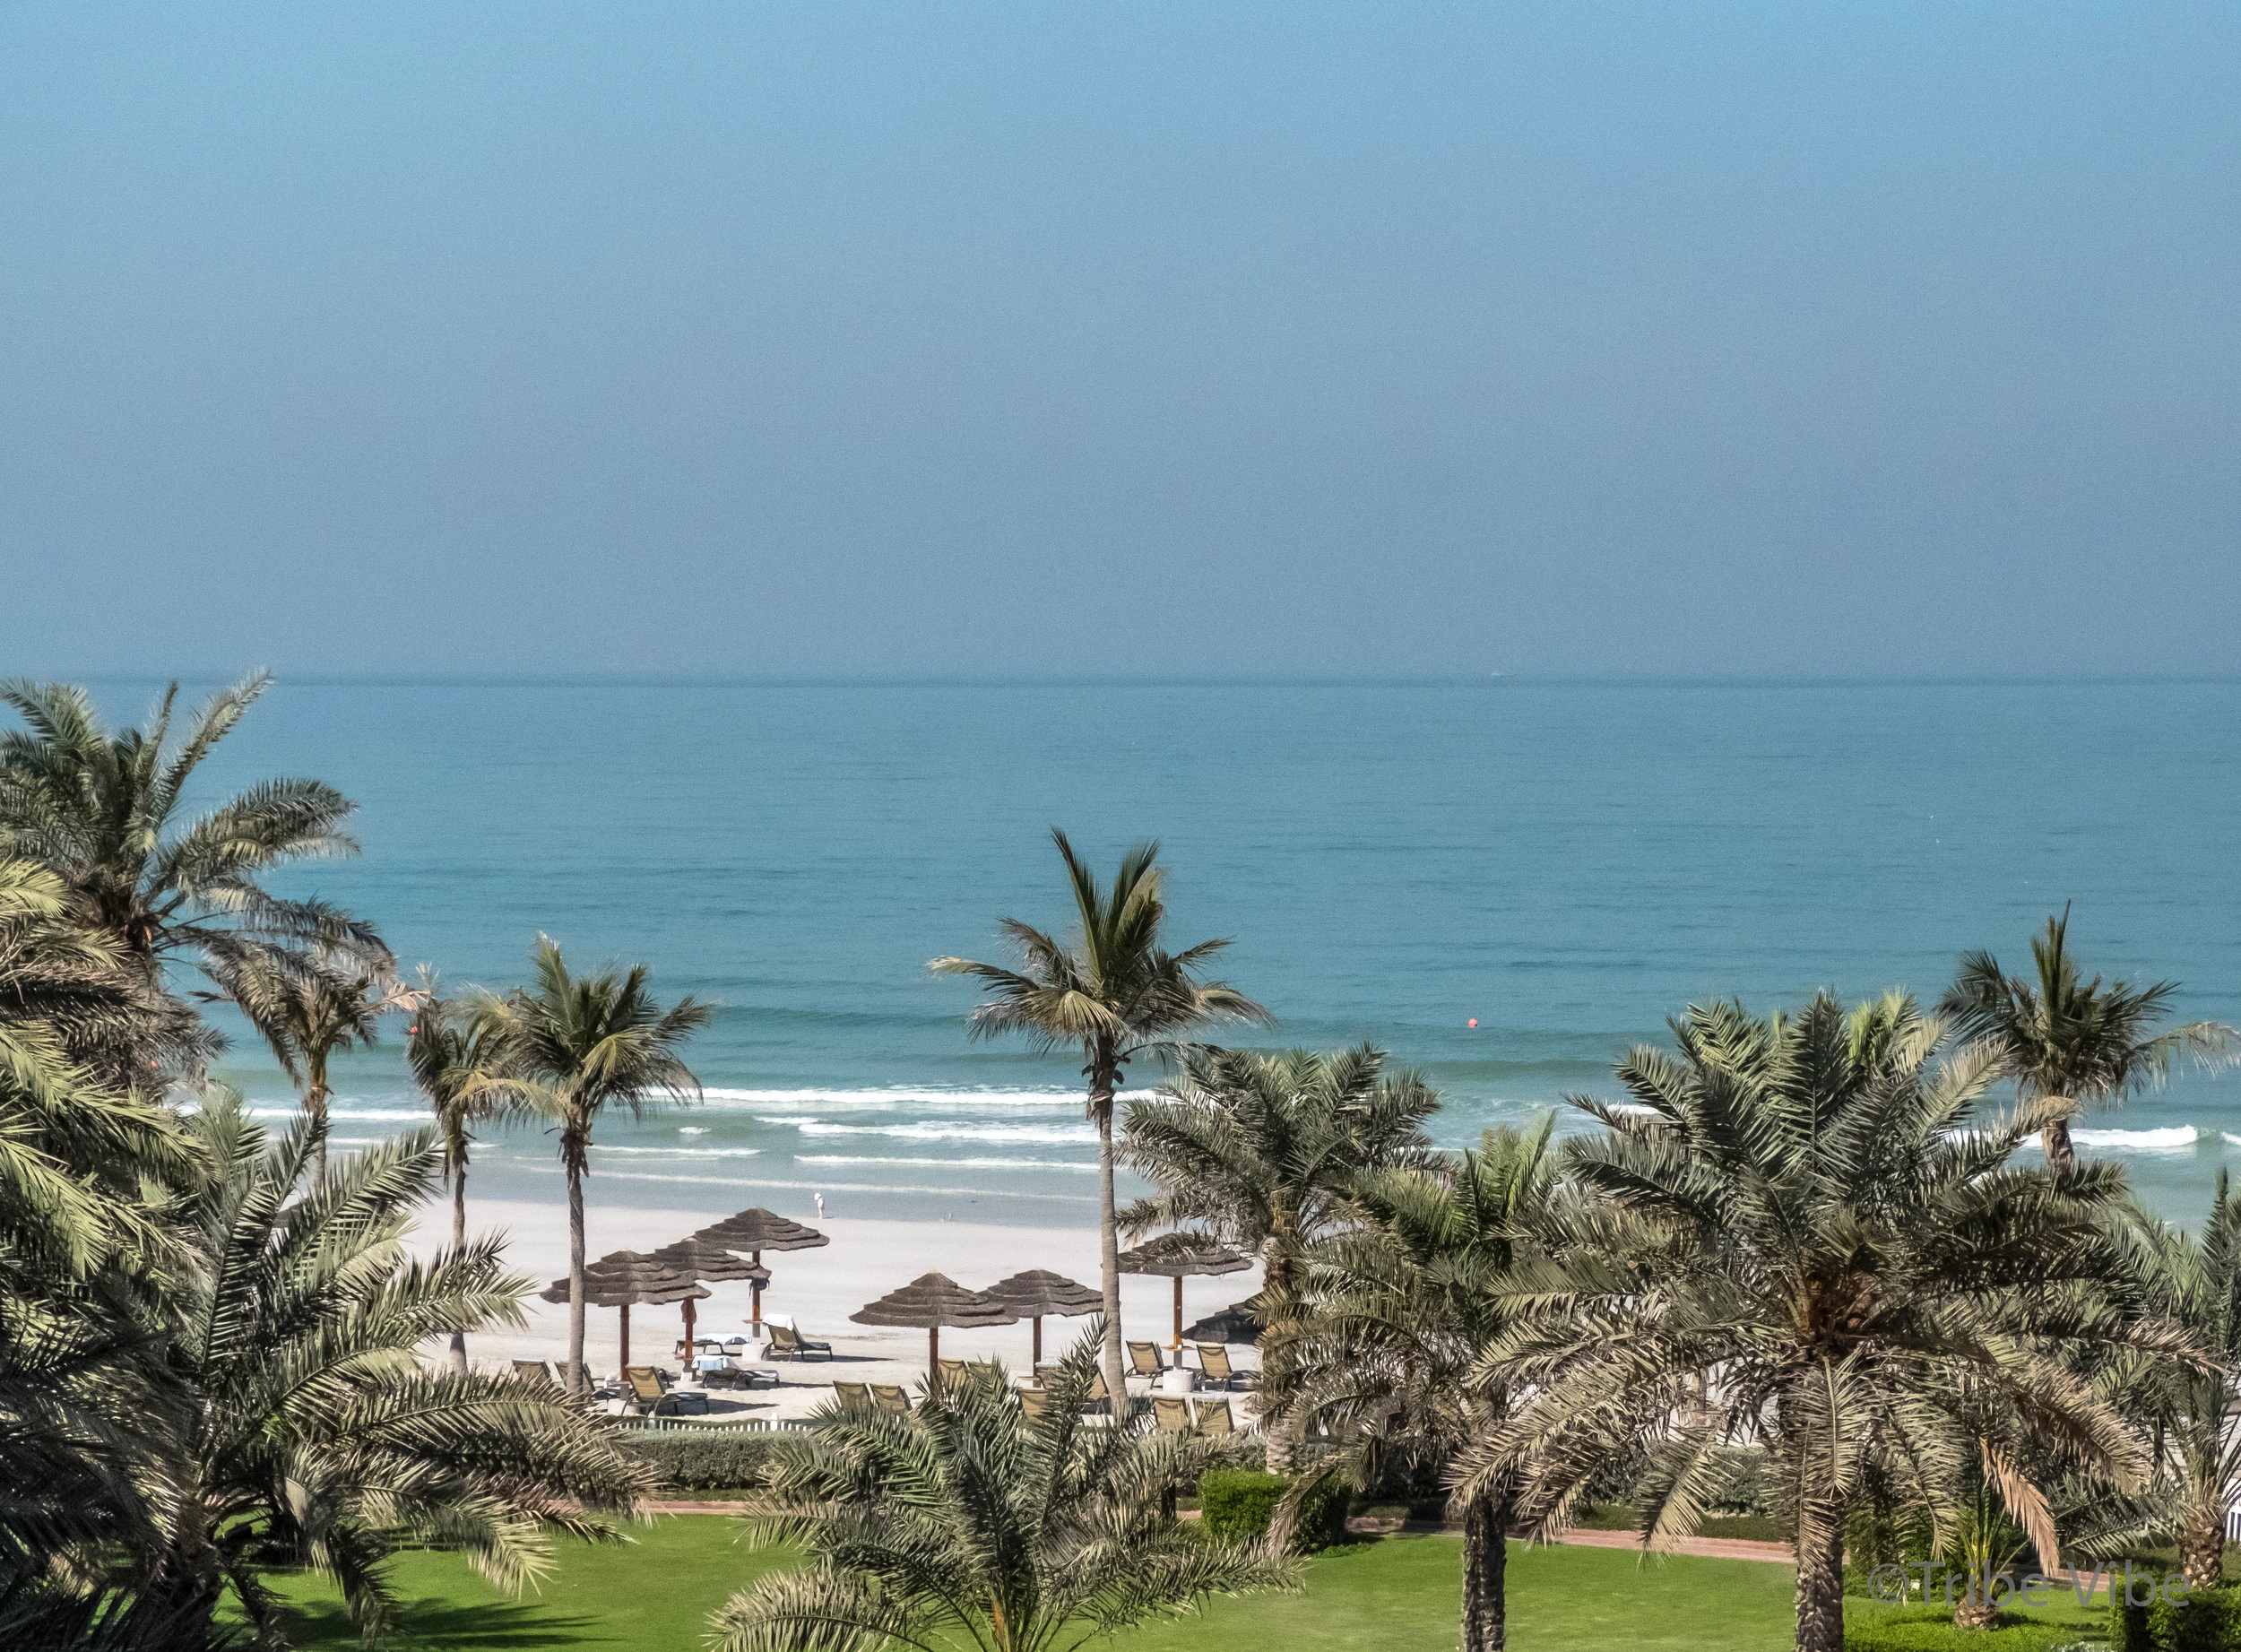 Looking out onto the Arabian Sea. What a view!